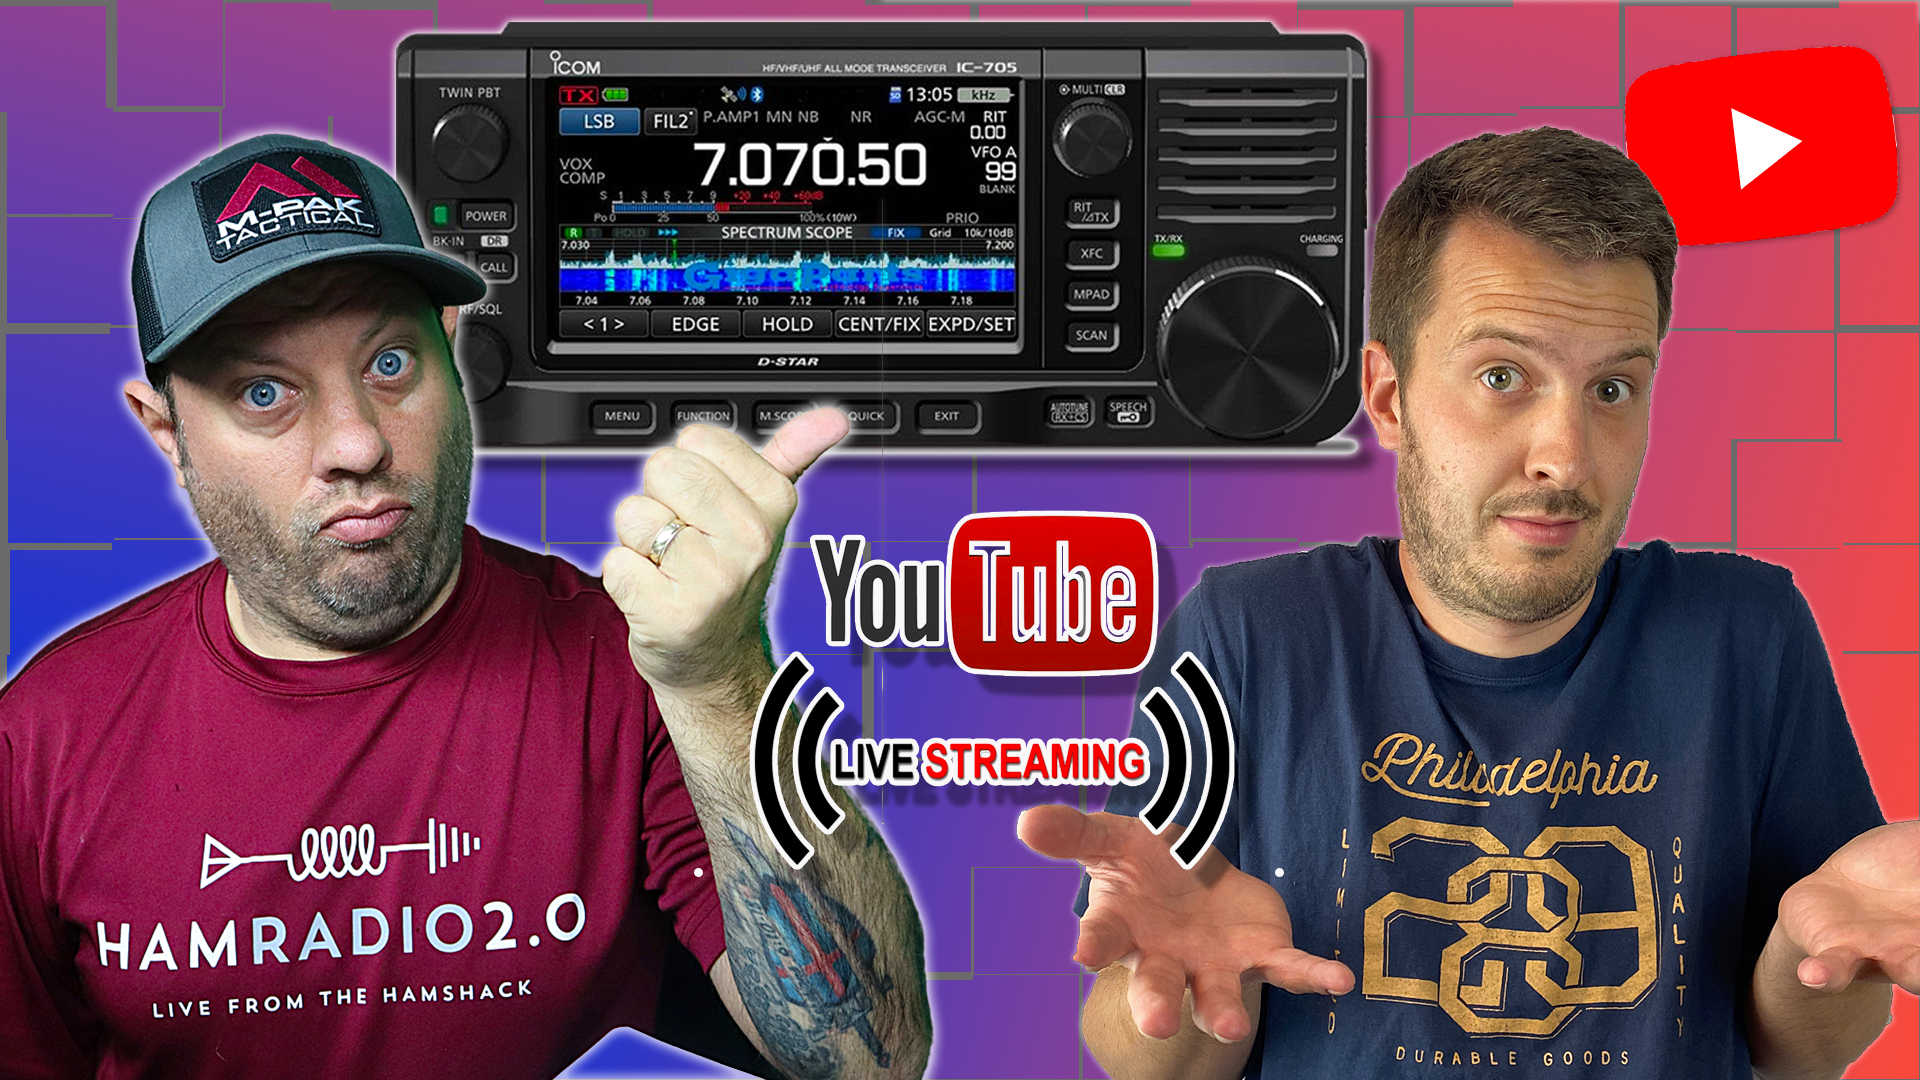 Episode 554: Using the Icom IC-705 and WSJT-x with Hayden from Ham Radio DX!